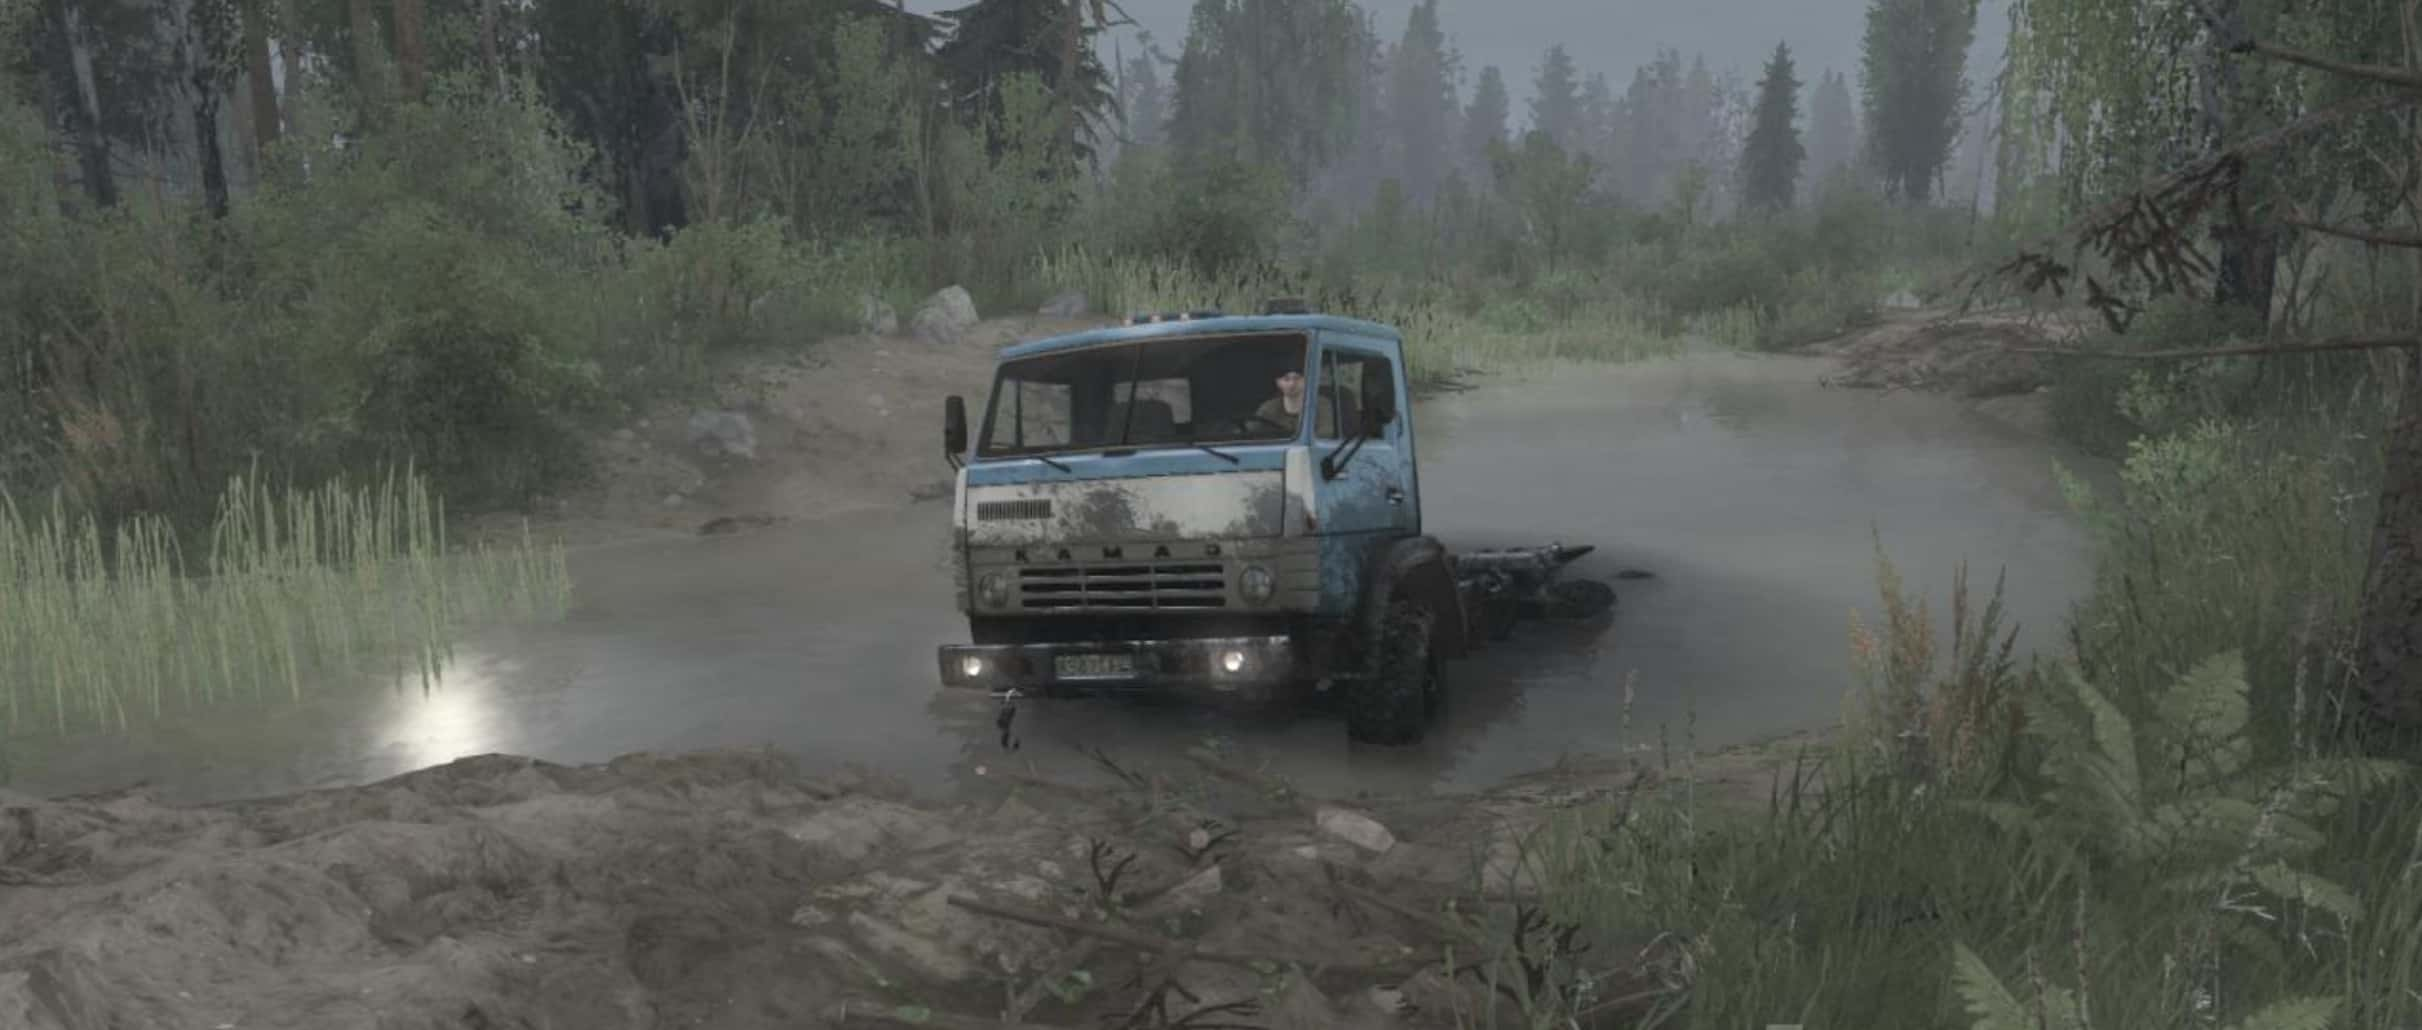 Who is faster map v1 spintires mudrunner mod map v1 spintires mods publicscrutiny Image collections